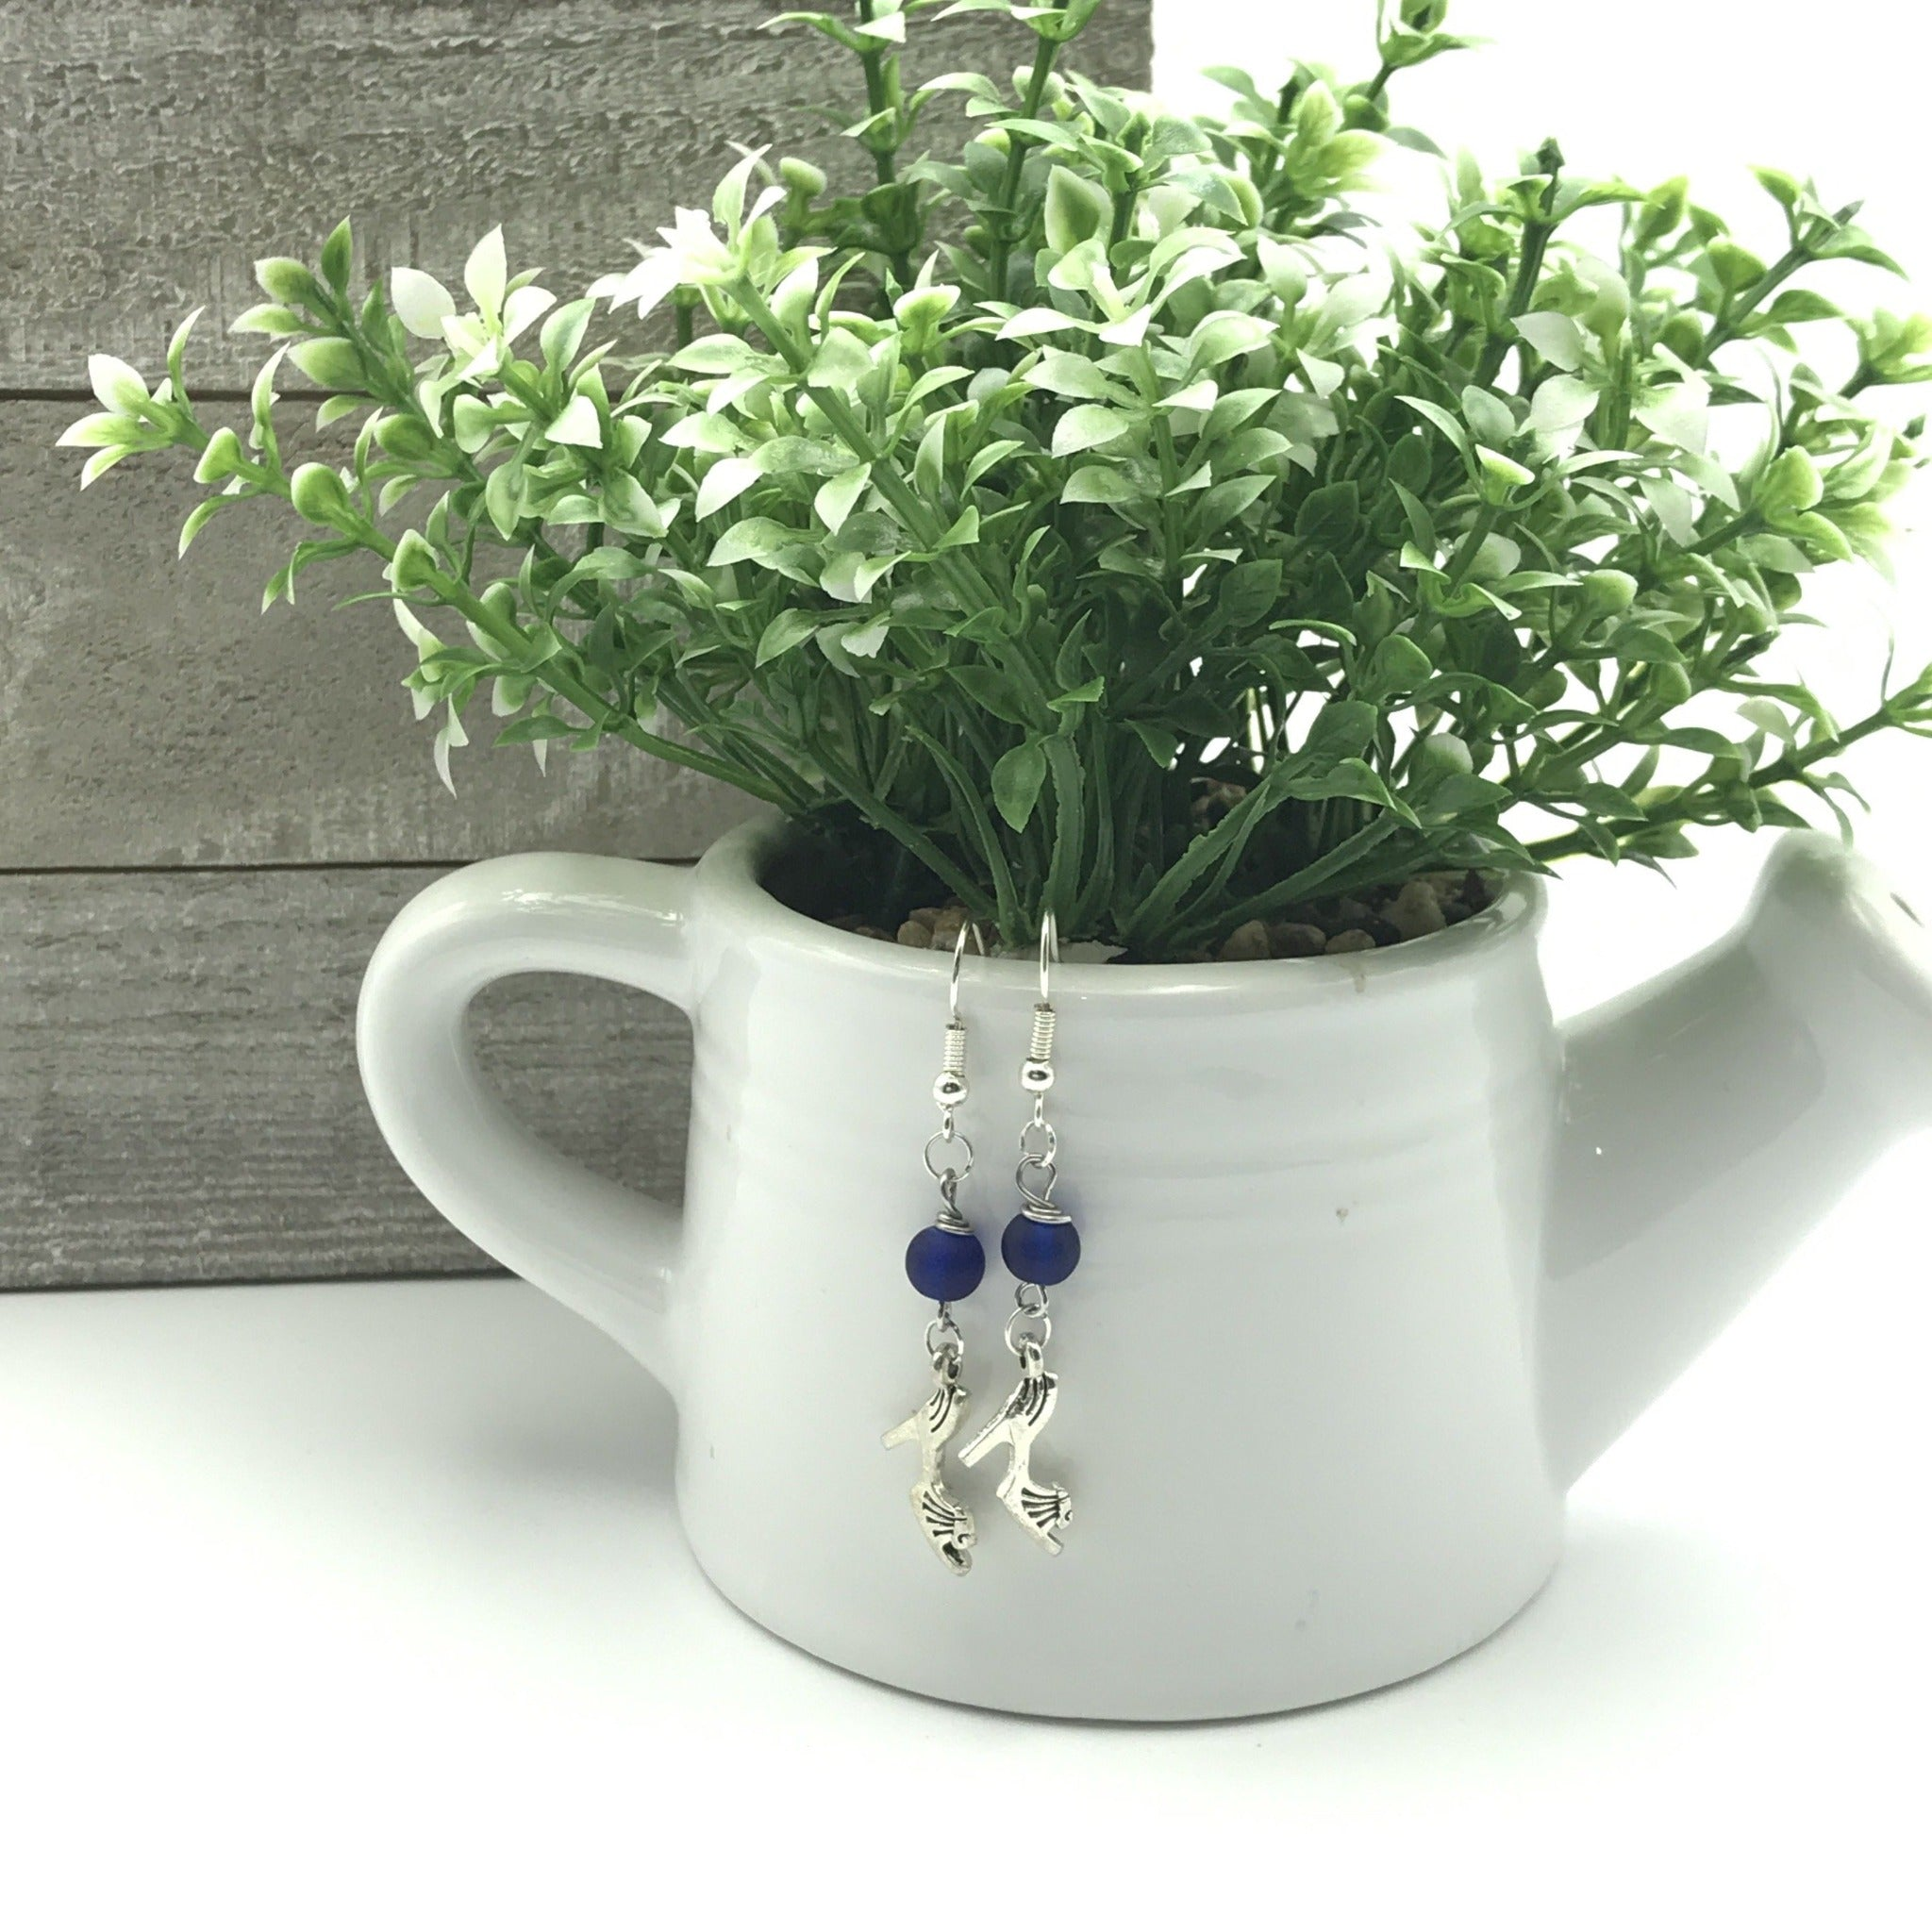 charming vintage silver tone high heel charm earrings with matte, blue, glass, round beads hung on a white ceramic watering can with a green and white tip succulent inside